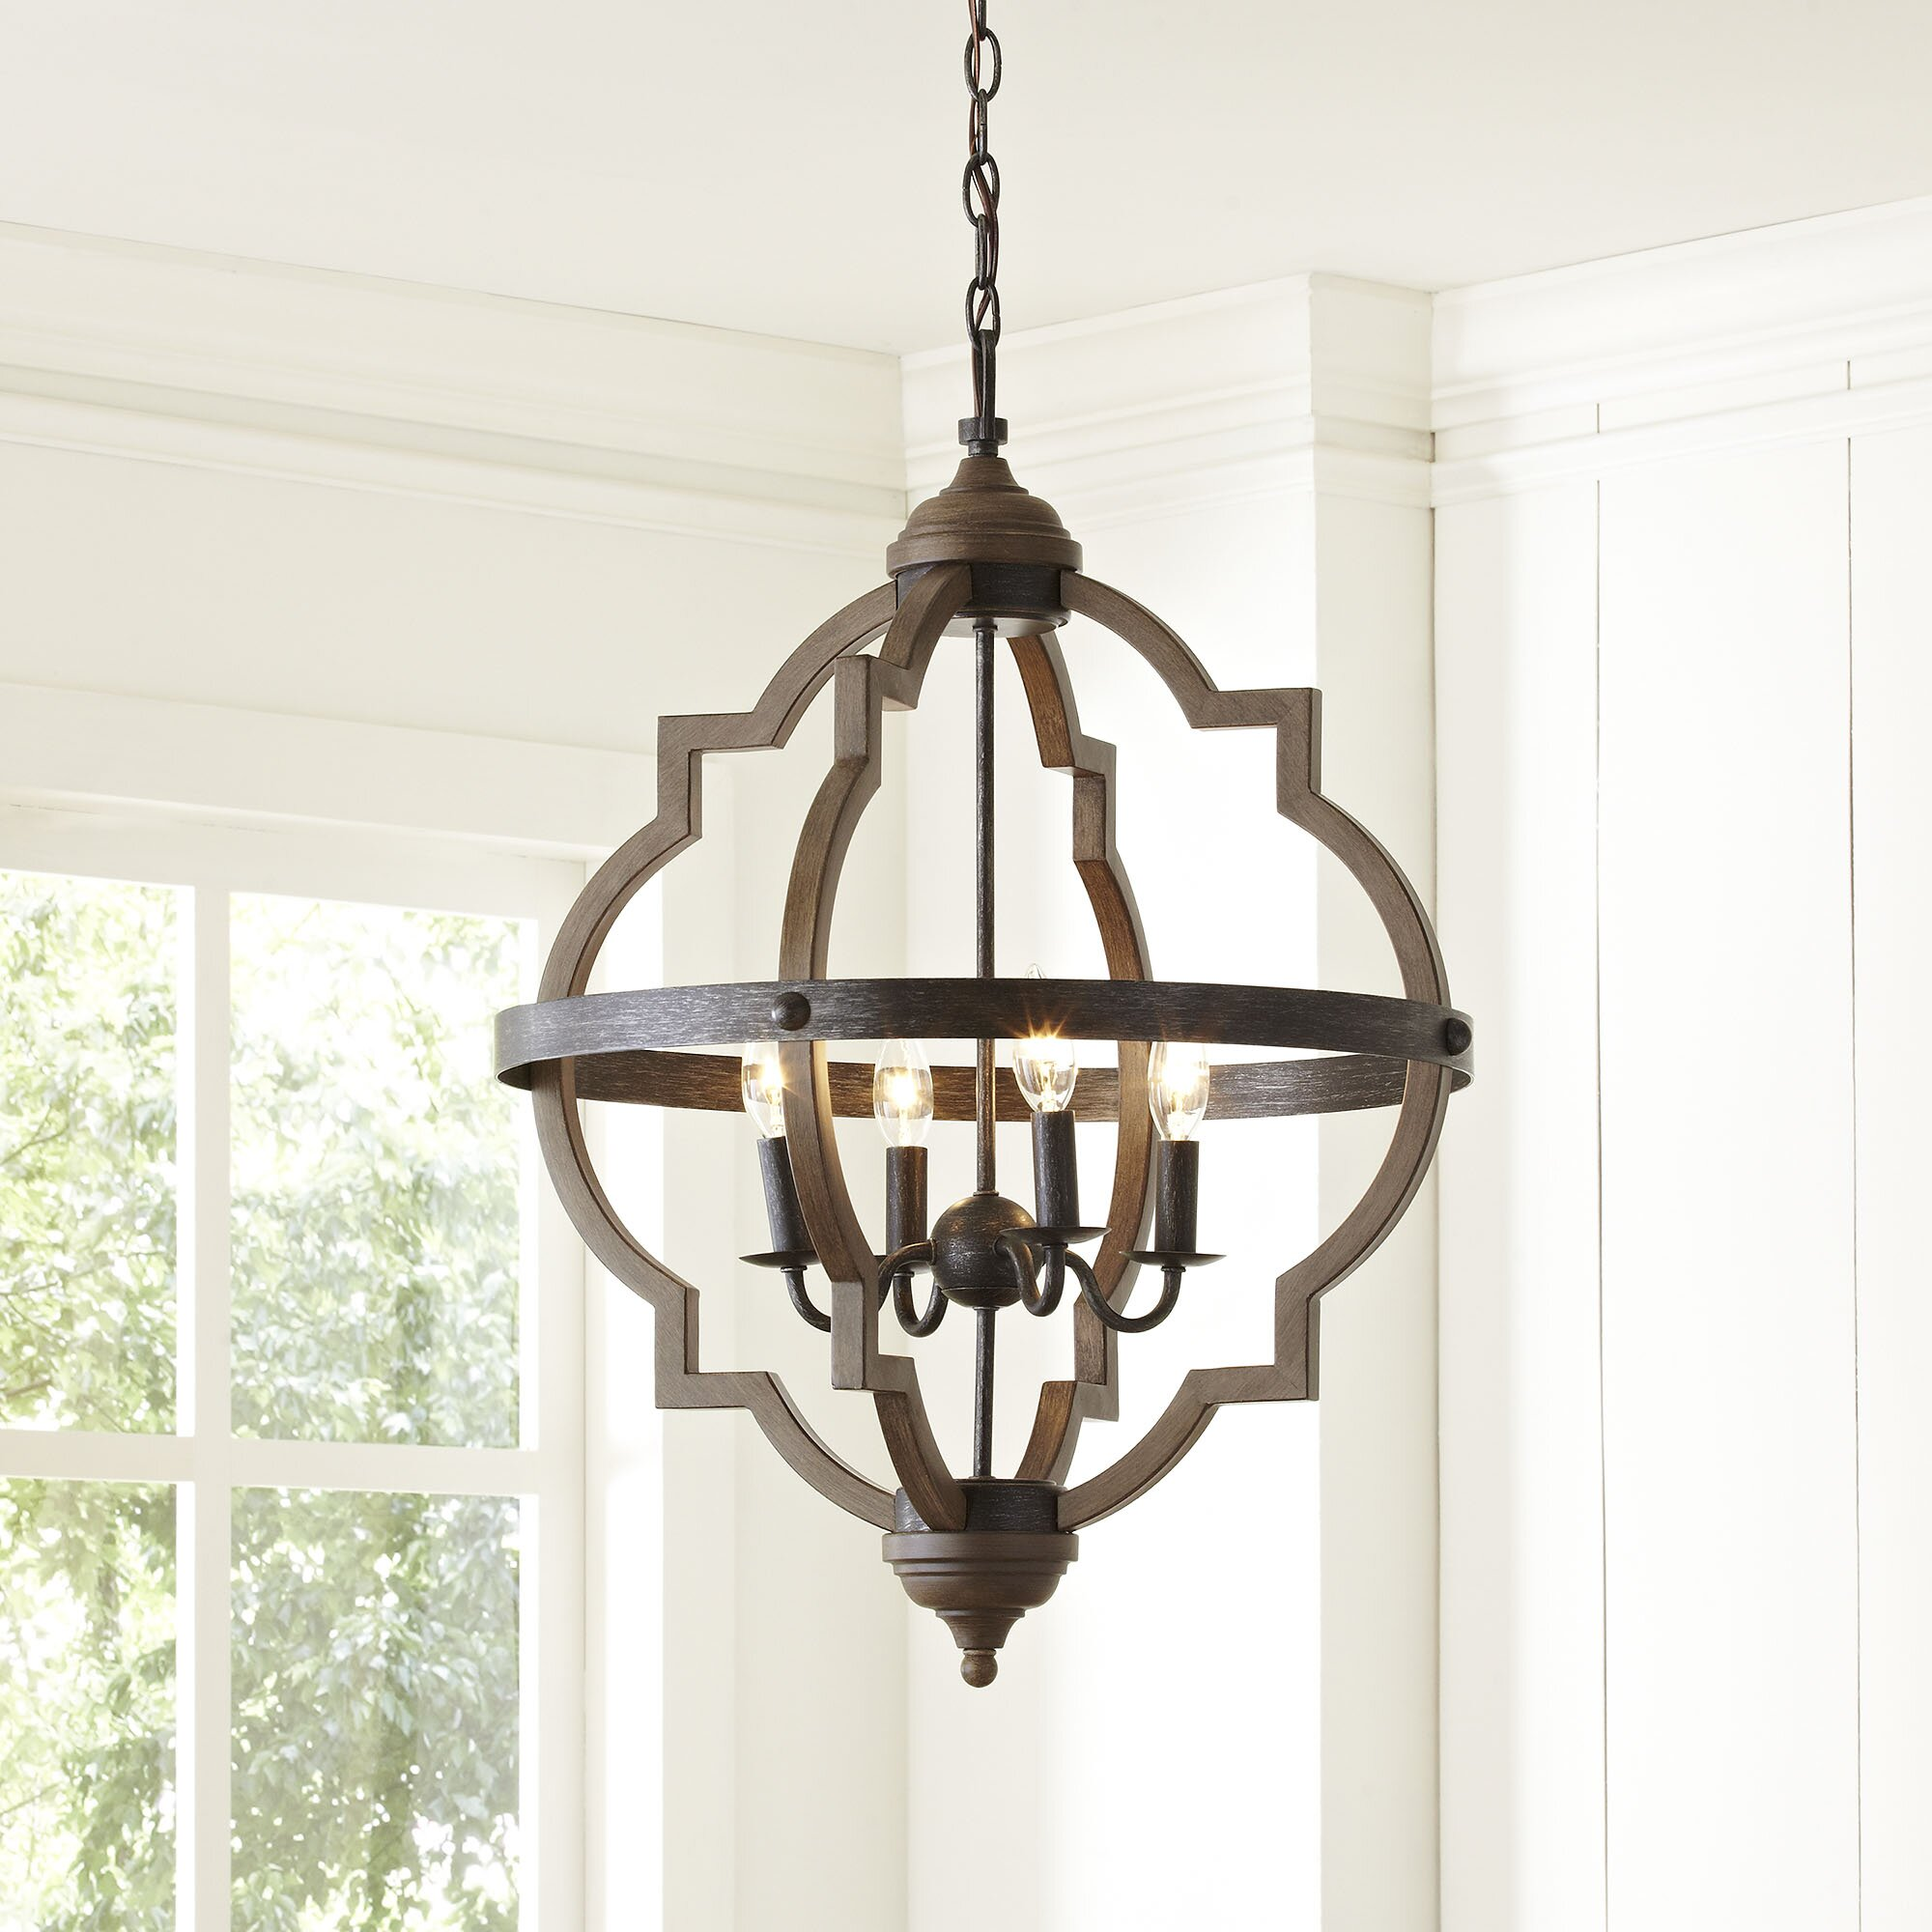 Chandeliers Youll Love – Best Place to Buy Chandeliers